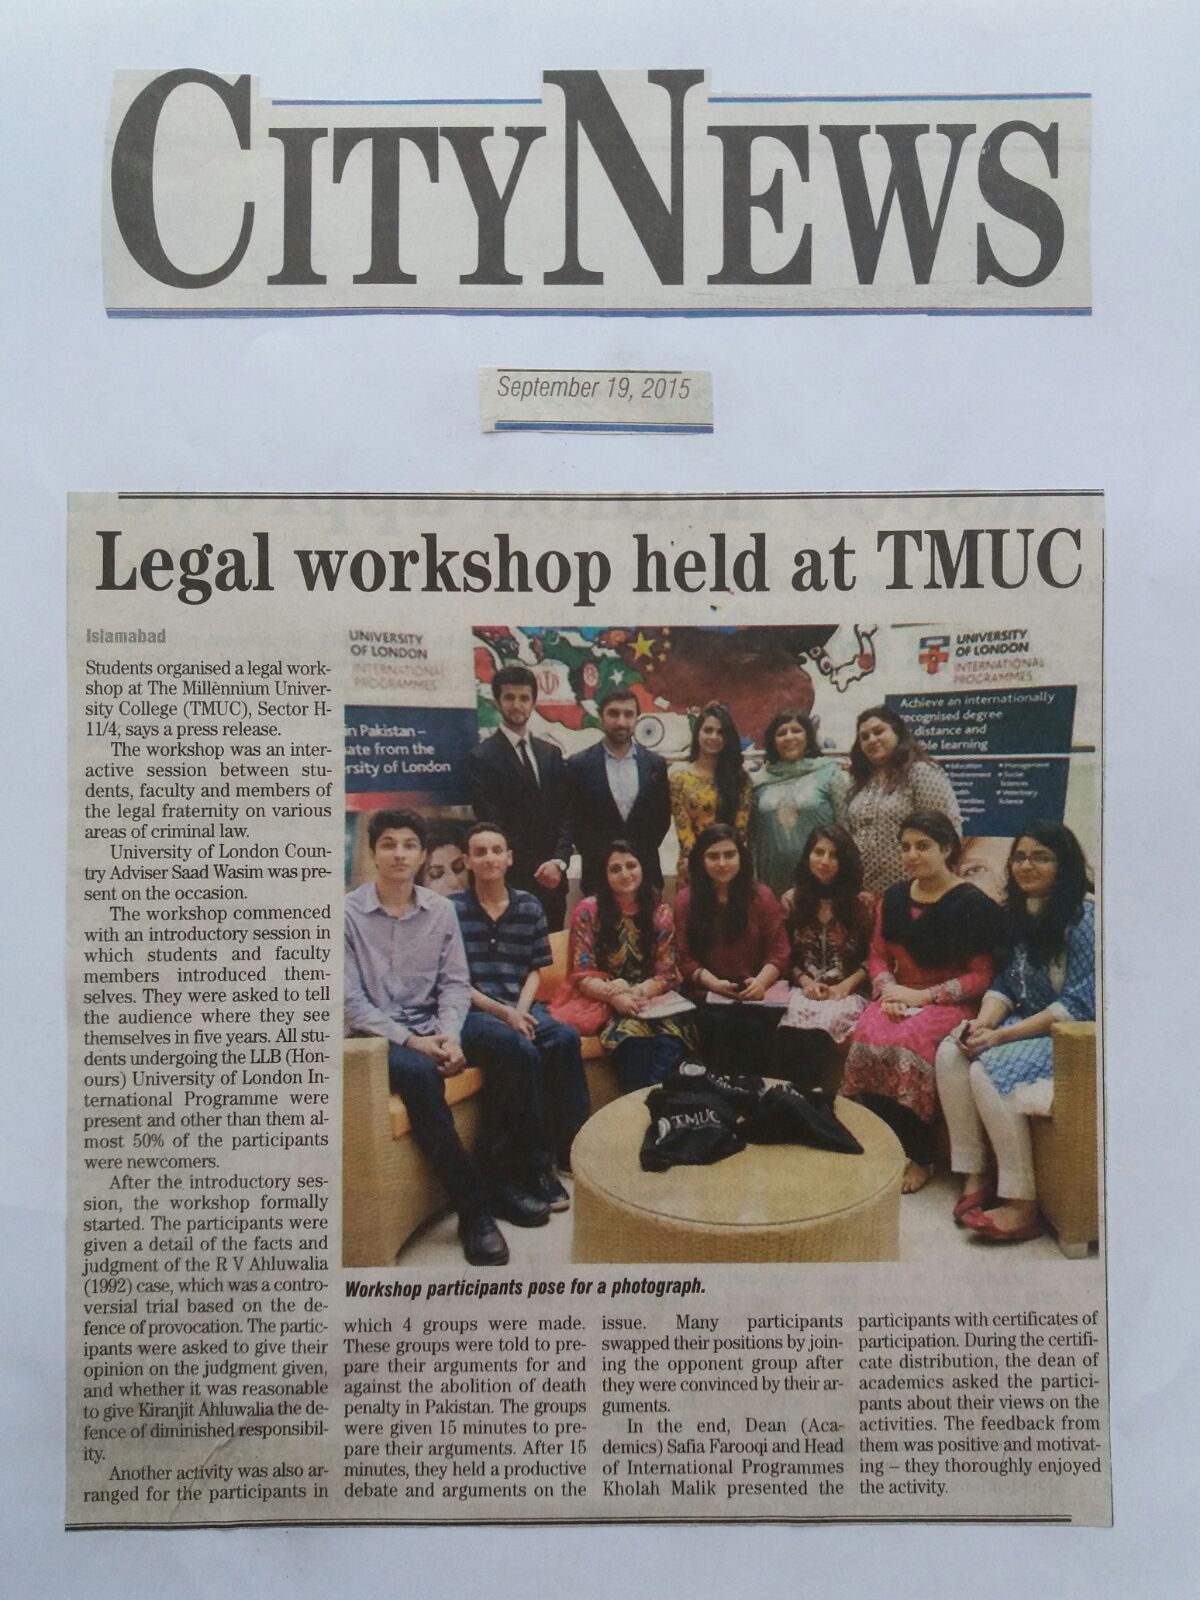 Legal workshop held at TMUC